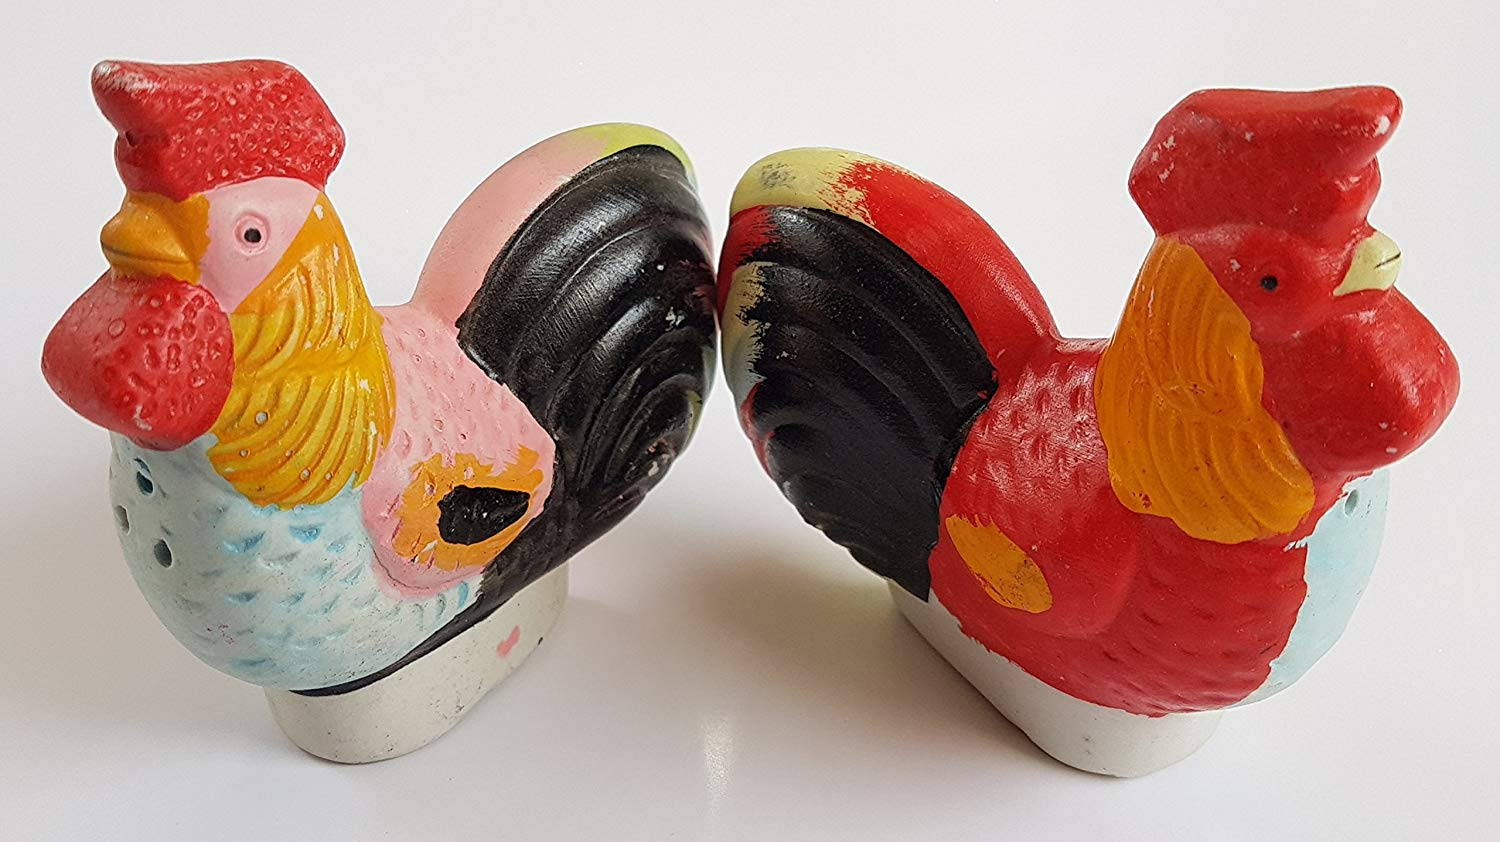 Y BUY Y Salt and Papper Shaker Set of 1 Chicken and 1 Hen collectors items COLORFUL ROOSTER SALT AND PEPPER SHAKERS